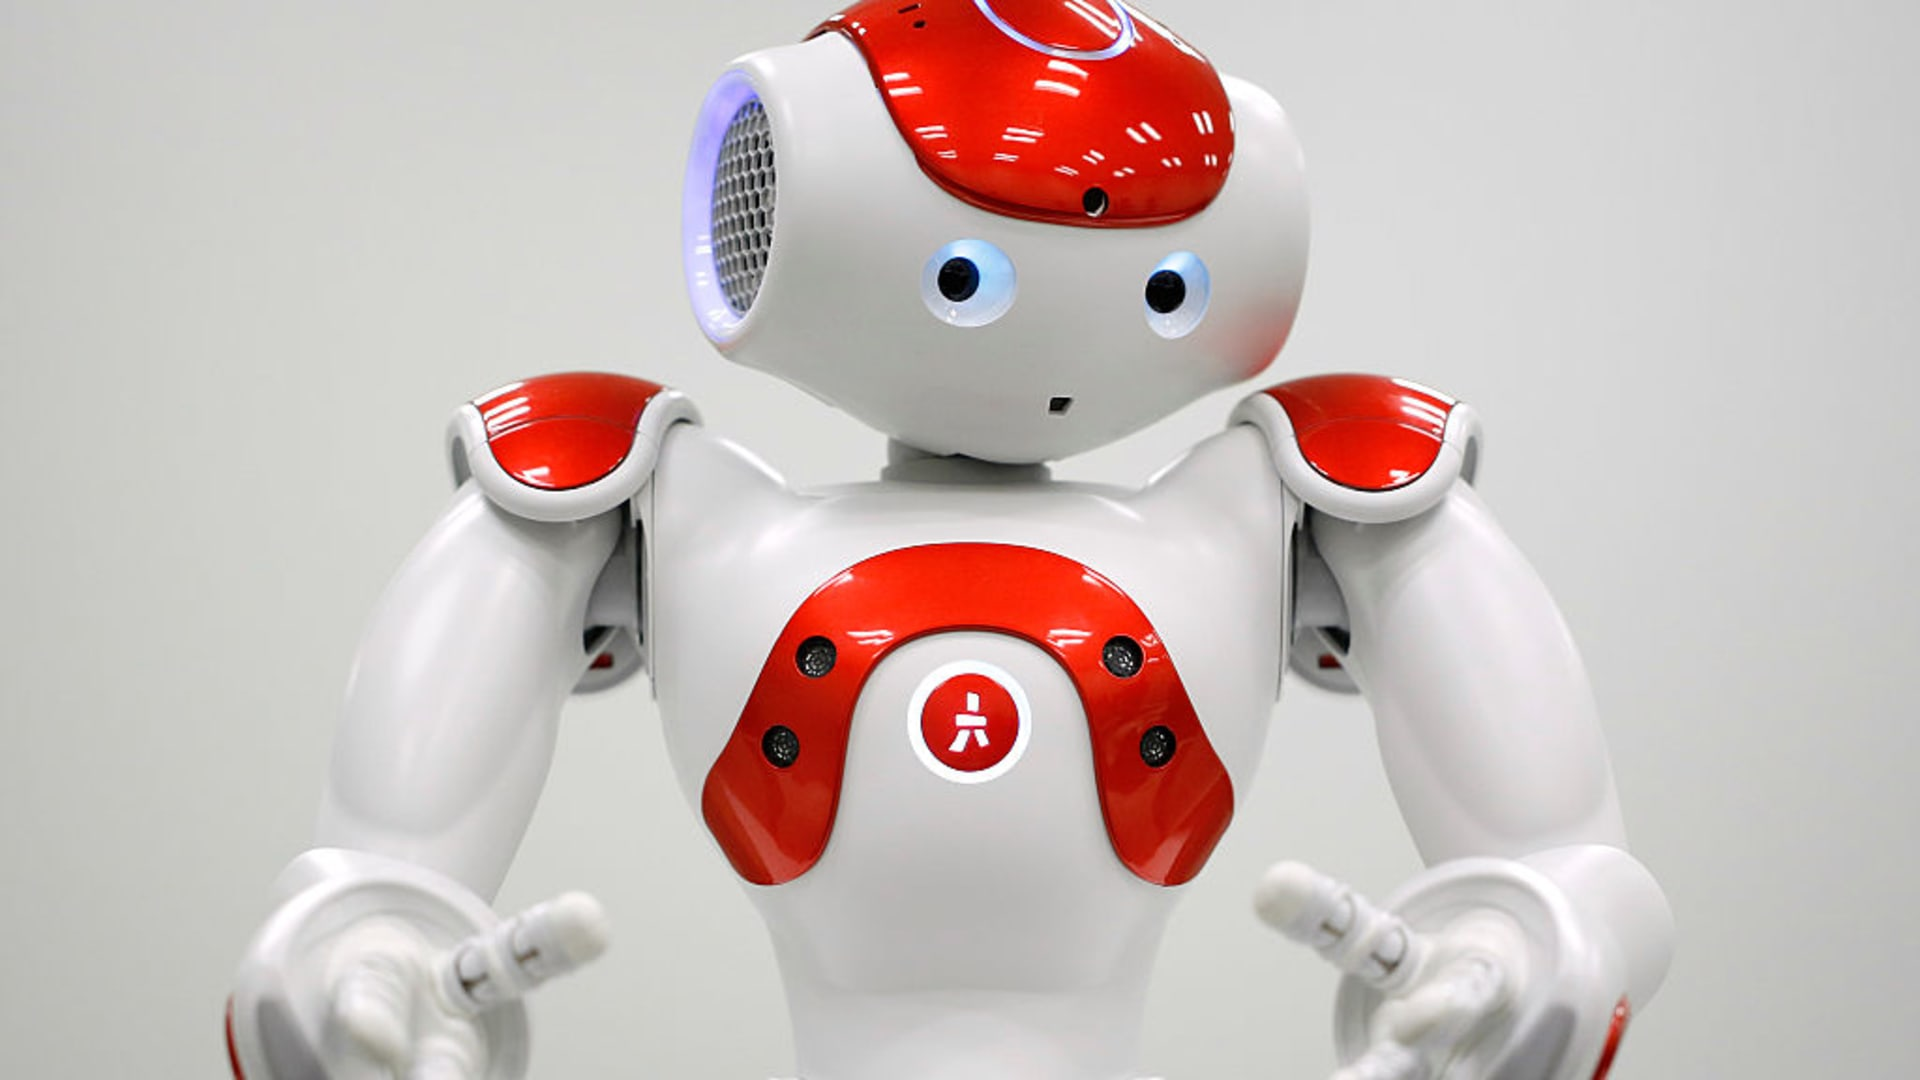 A NAO humanoid robot, developed by Softbank Corp. subsidiary Aldebaran Robotics SA.